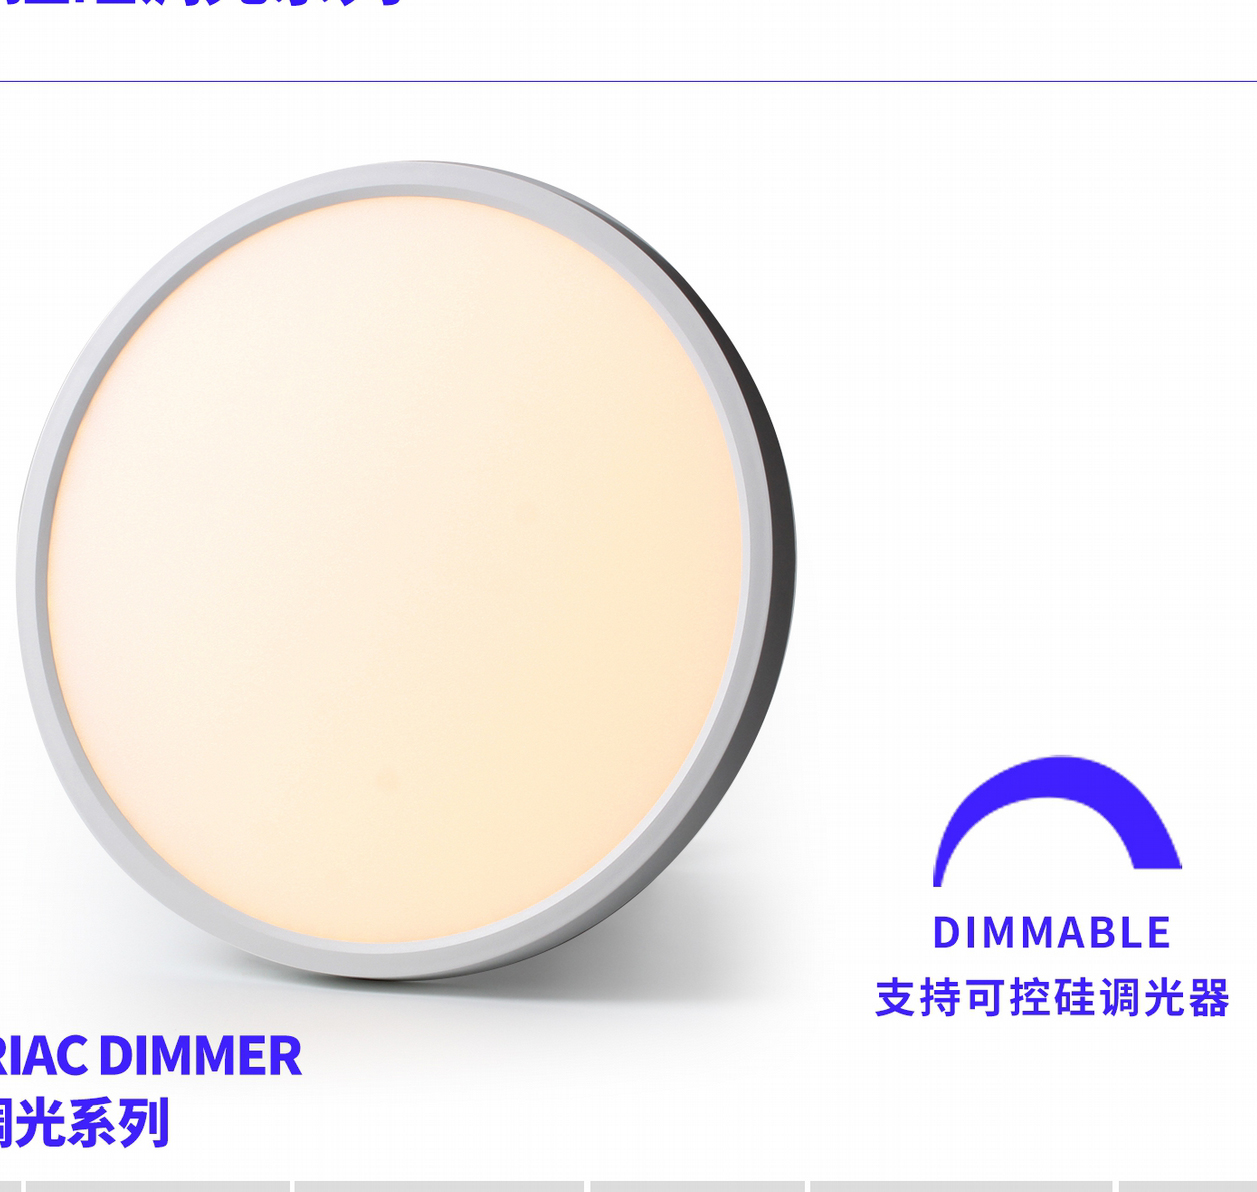 Dimmabel Surface ceiling light by Triac Dimmer